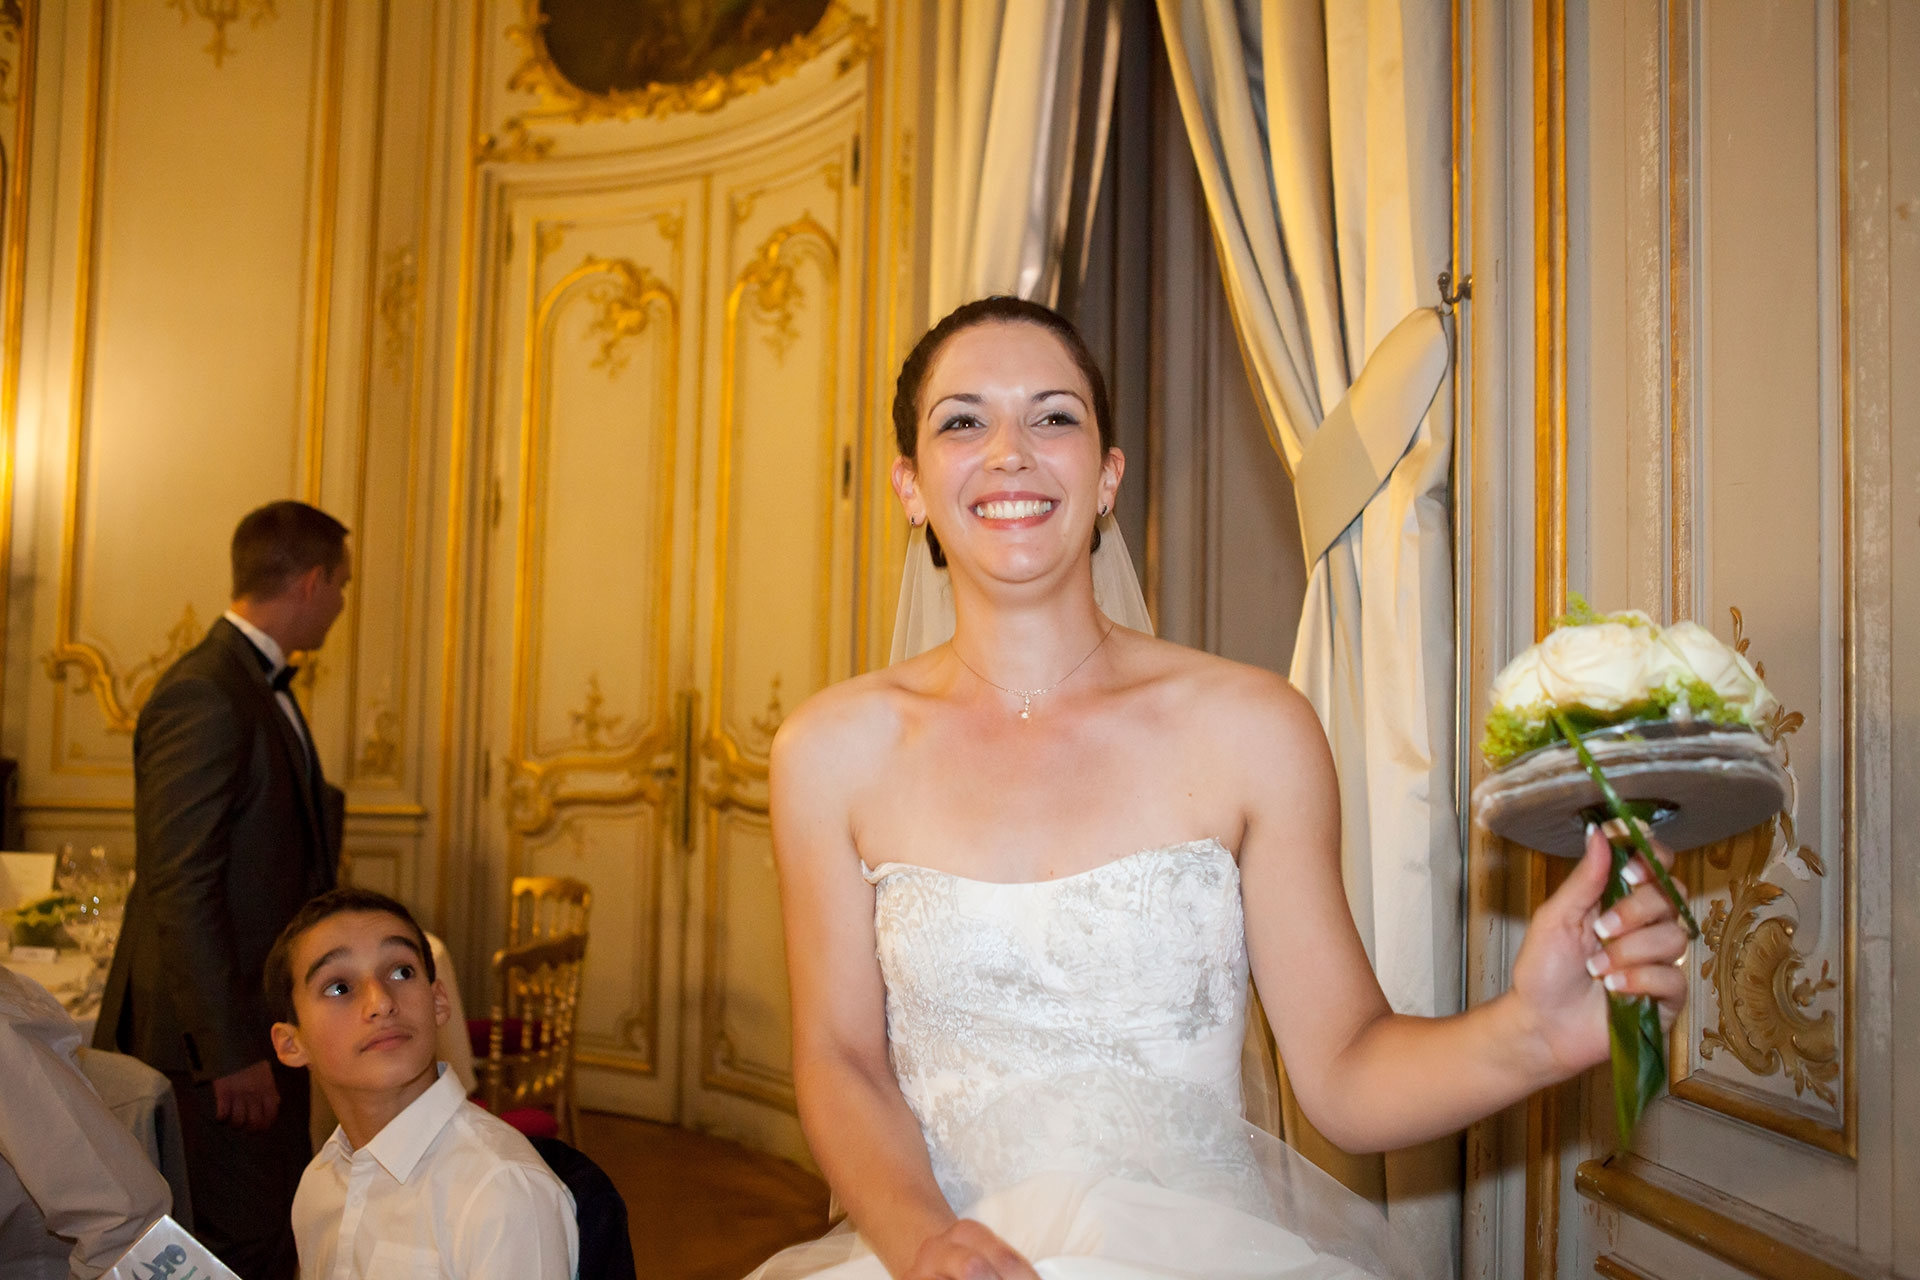 particuliers-mariage-oui-delphineguillaume-61